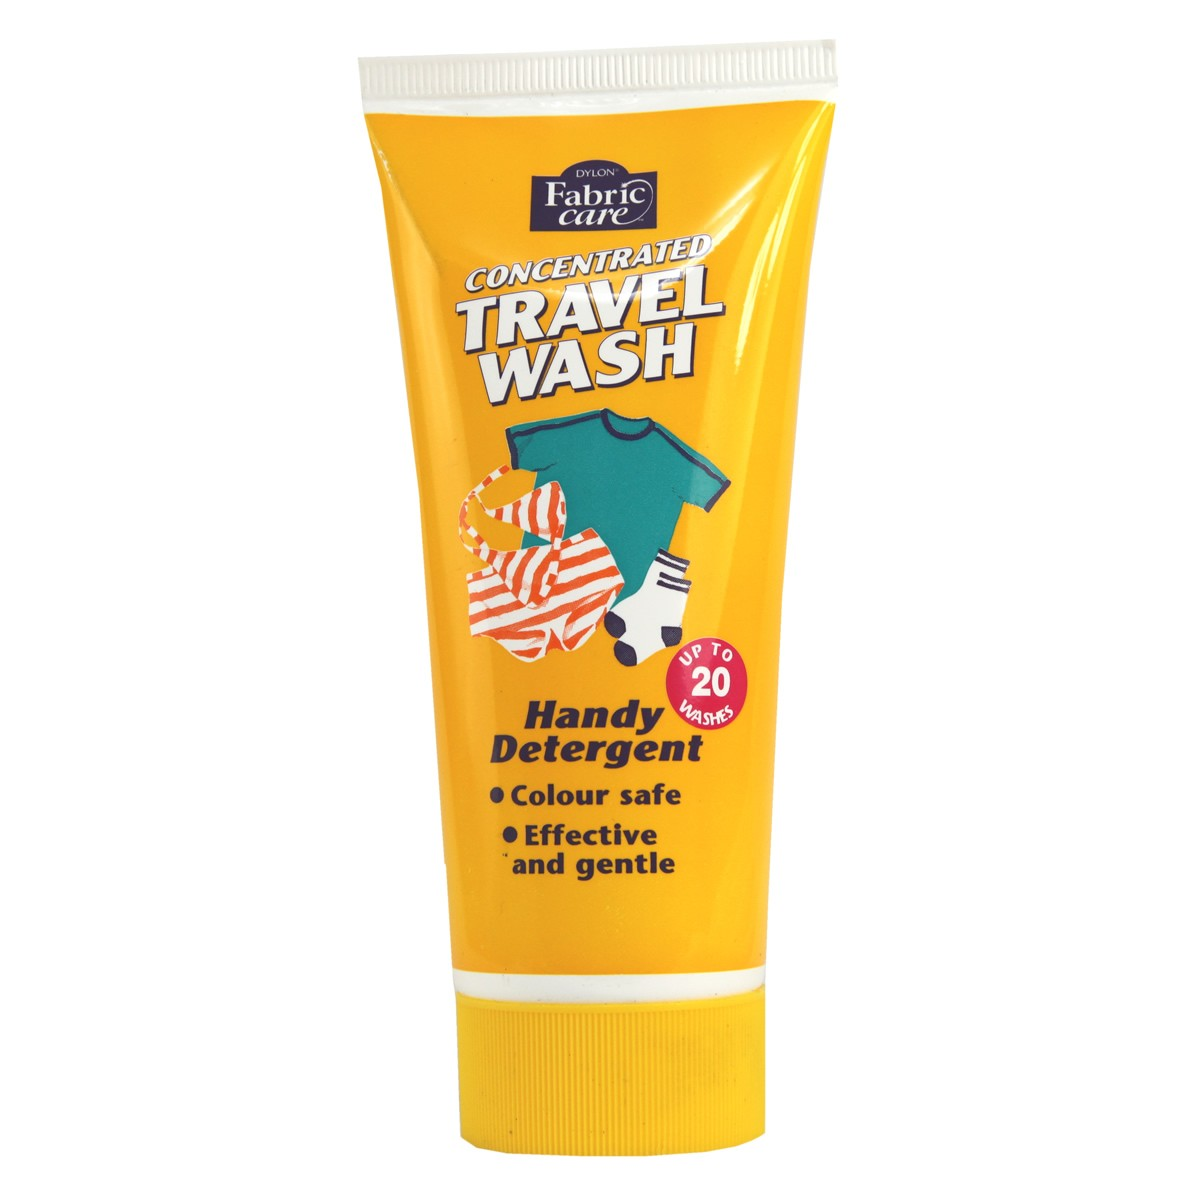 Fabric Care Concentrated Travel Wash